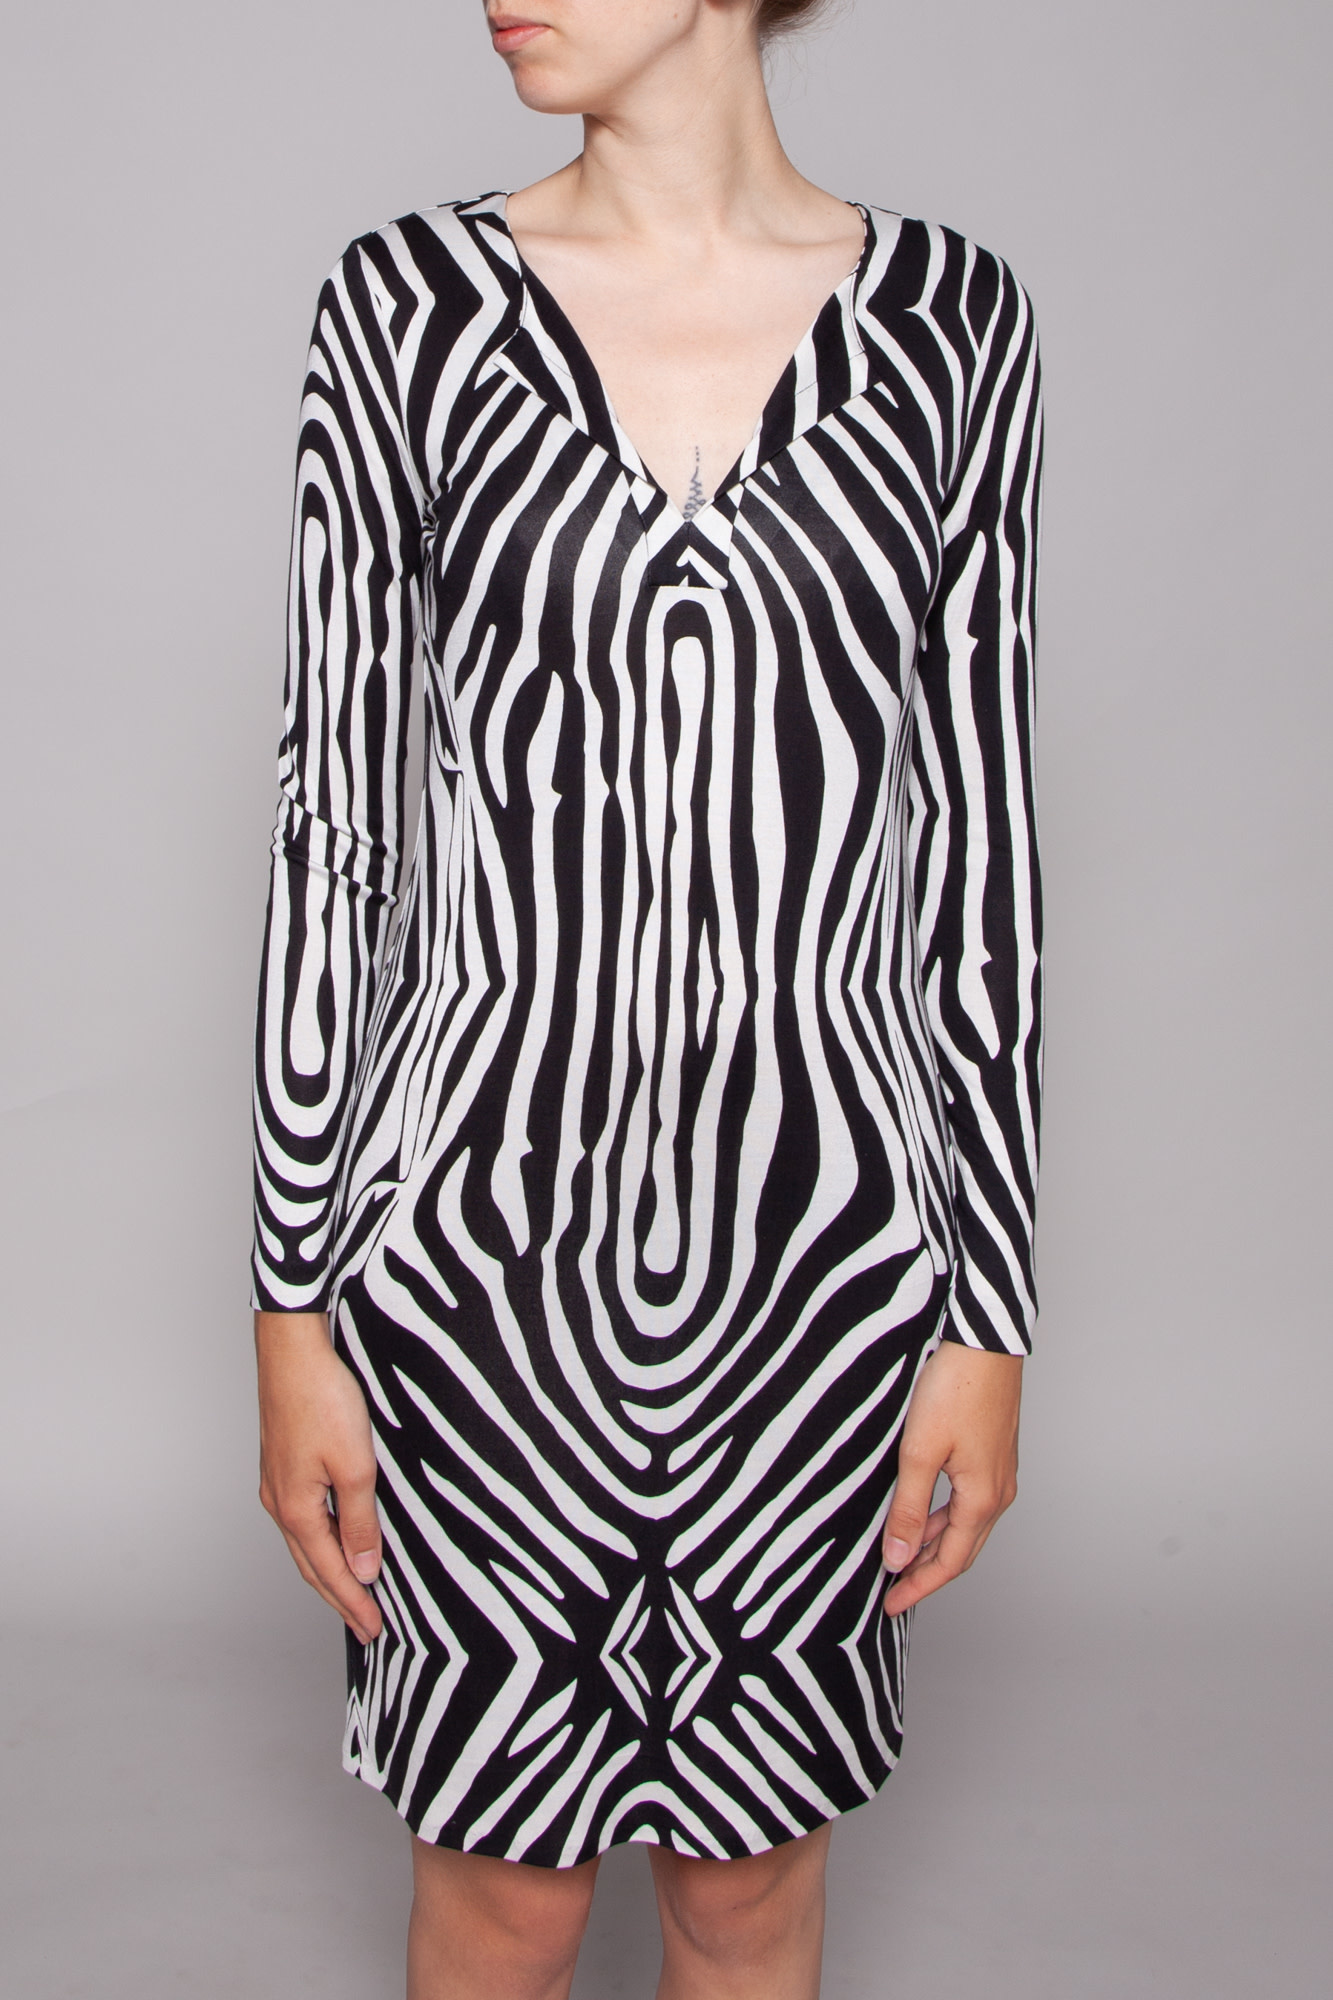 Diane von Furstenberg FITTED ZEBRA PRINT SILK DRESS